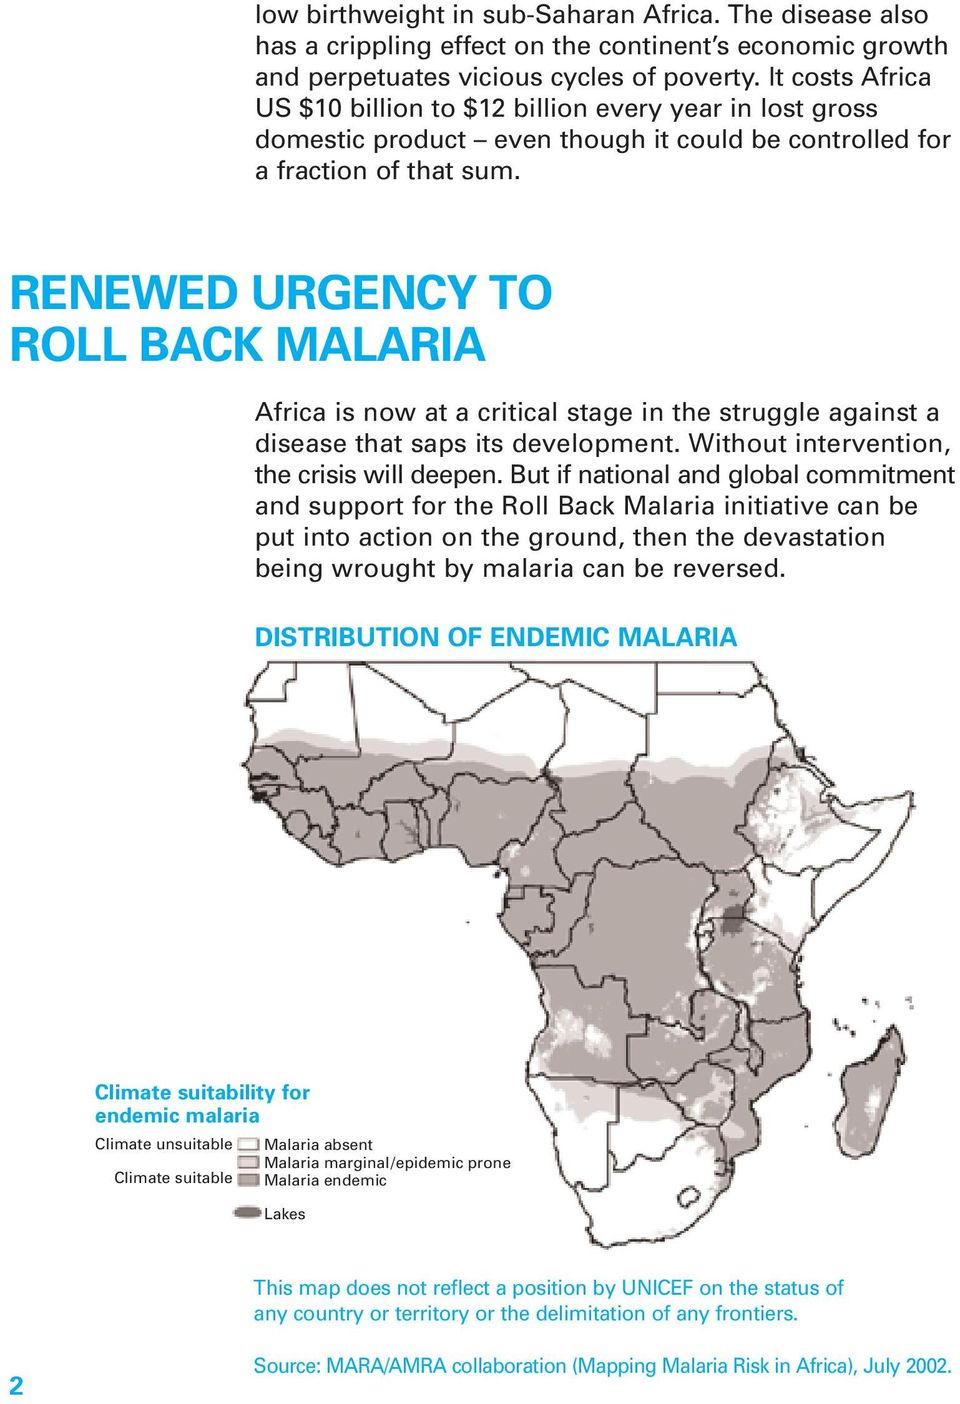 RENEWED URGENCY TO ROLL BACK MALARIA Africa is now at a critical stage in the struggle against a disease that saps its development. Without intervention, the crisis will deepen.